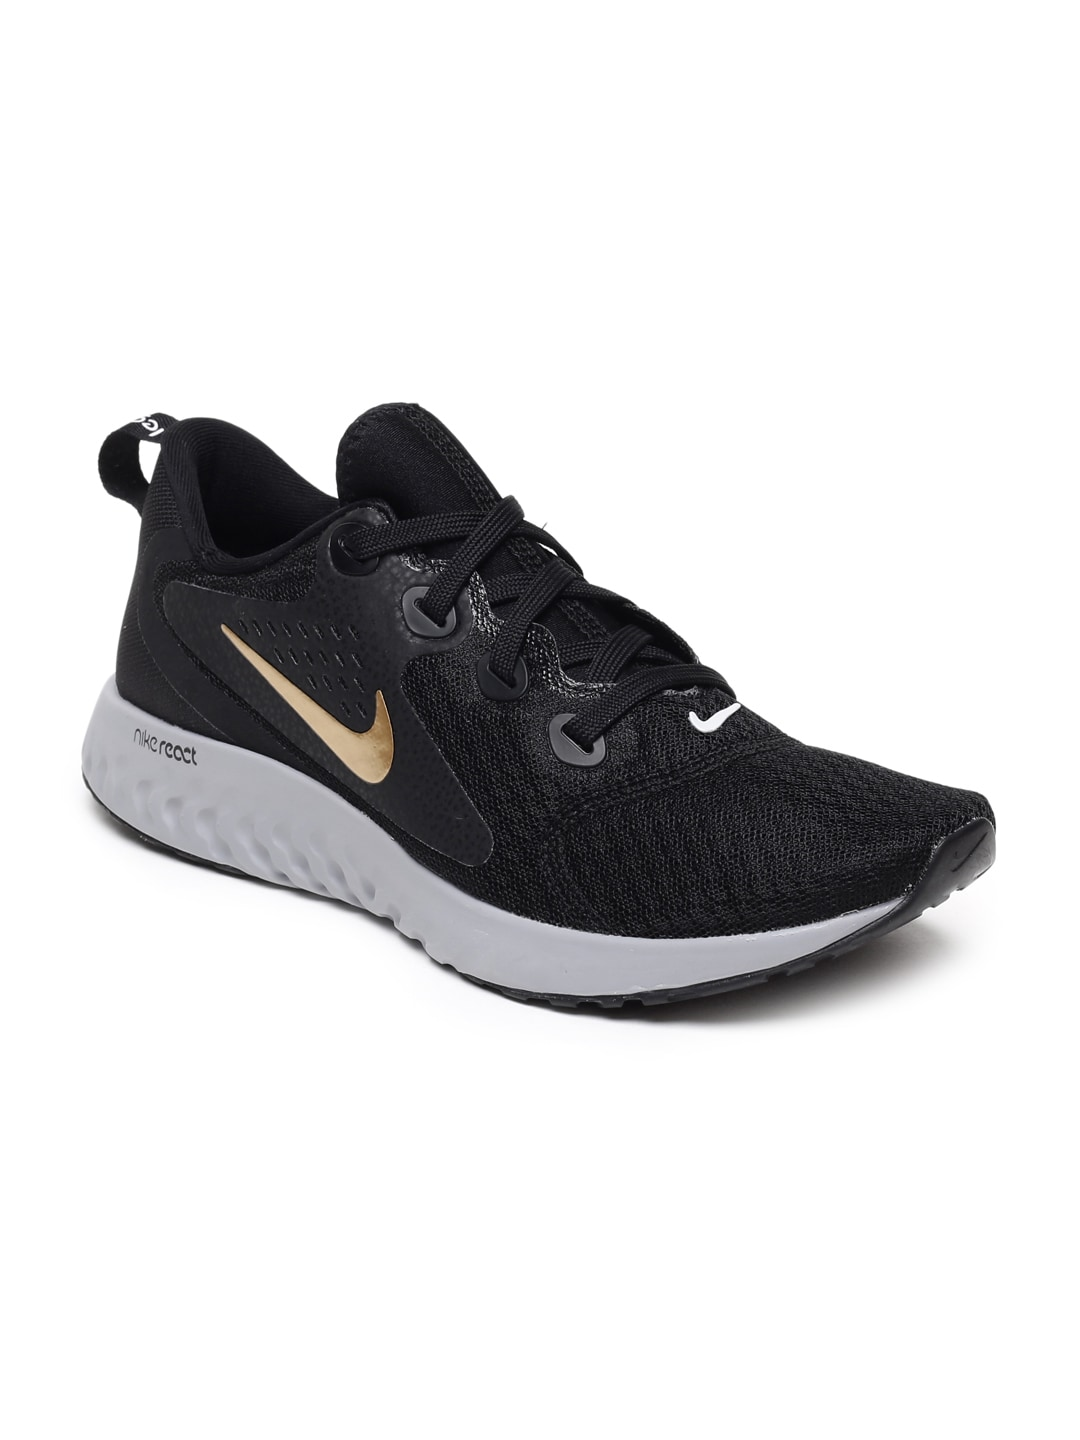 0541e36e1 Nike Safari Backpacks Sports Shoes - Buy Nike Safari Backpacks Sports Shoes  online in India